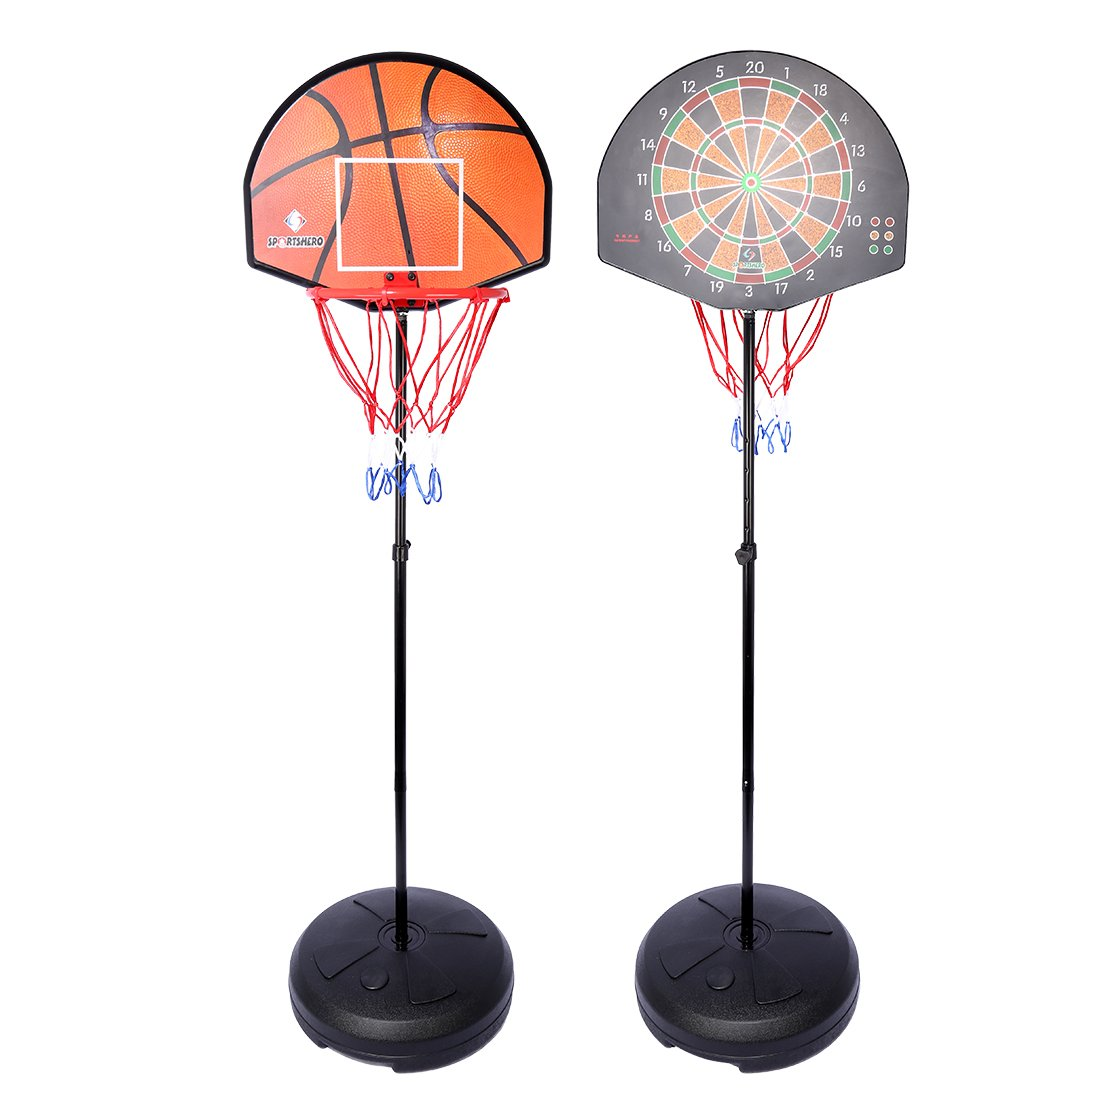 Basketball Stands PINCHUANGHUI 2-in-1 Standing Darts and Basketball Stands Kids Teenagers Goal Hoop Shooting Toy Set by PINCHUANGHUI (Image #7)